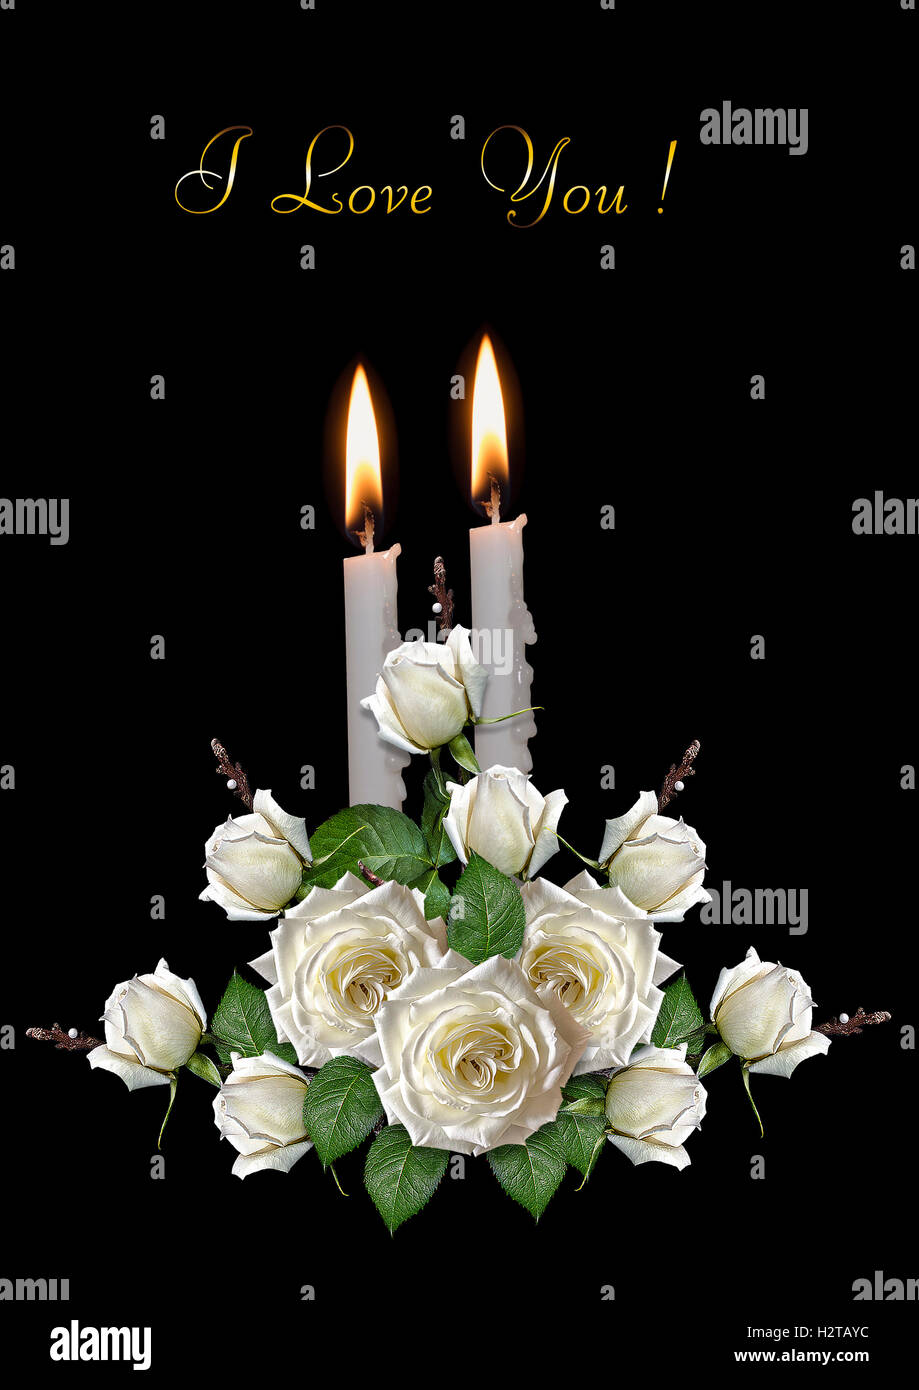 Black Greeting Card With Burning Candles And White Roses Stock Photo